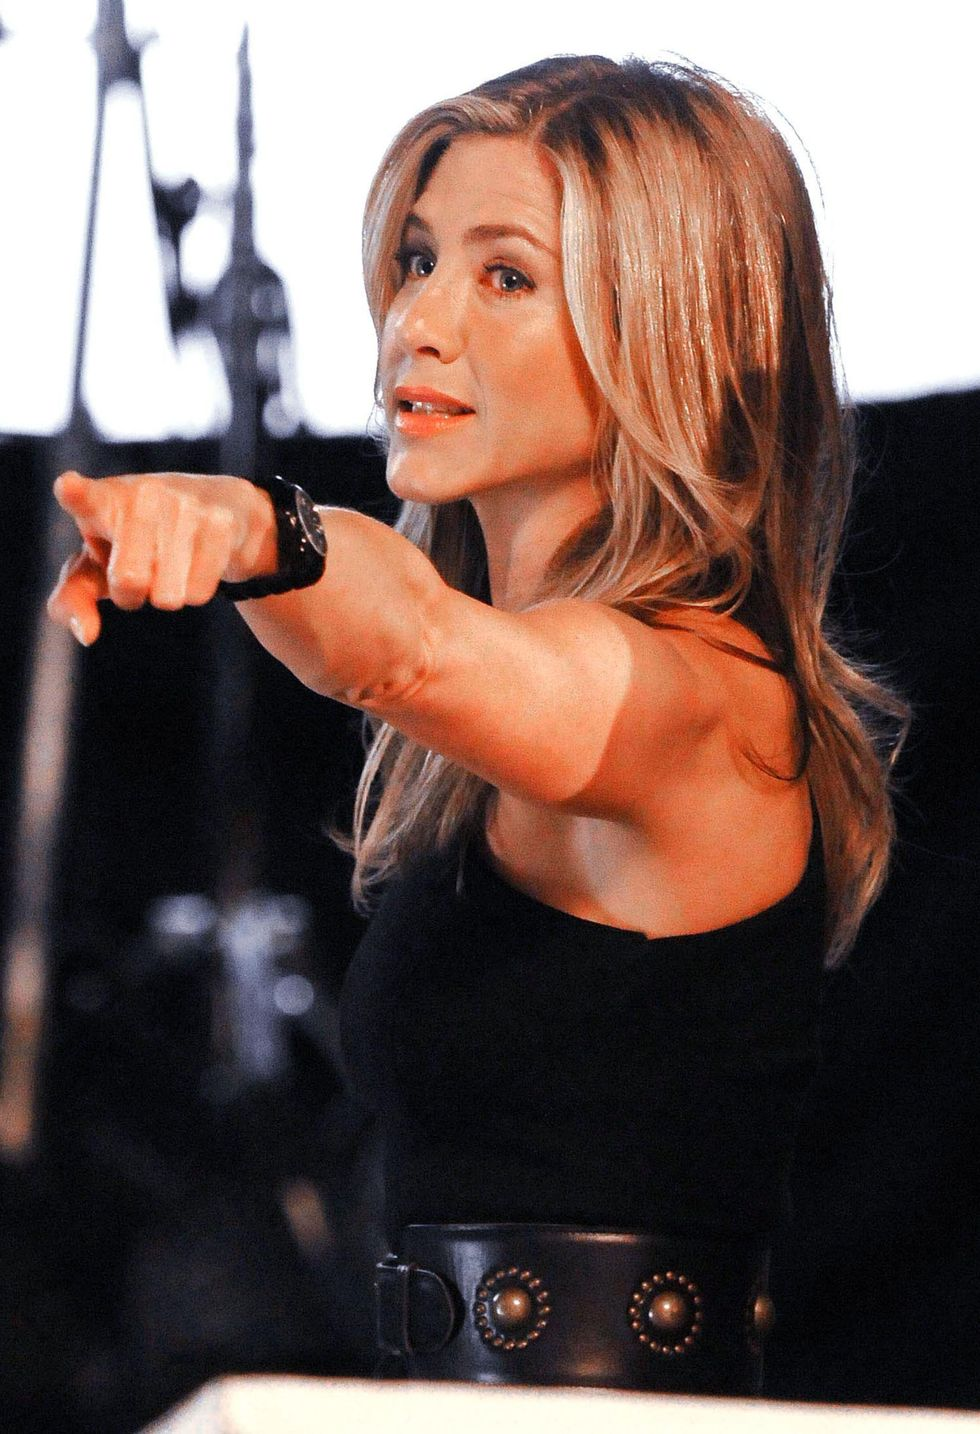 jennifer-aniston-on-the-set-of-30-rock-in-new-york-01